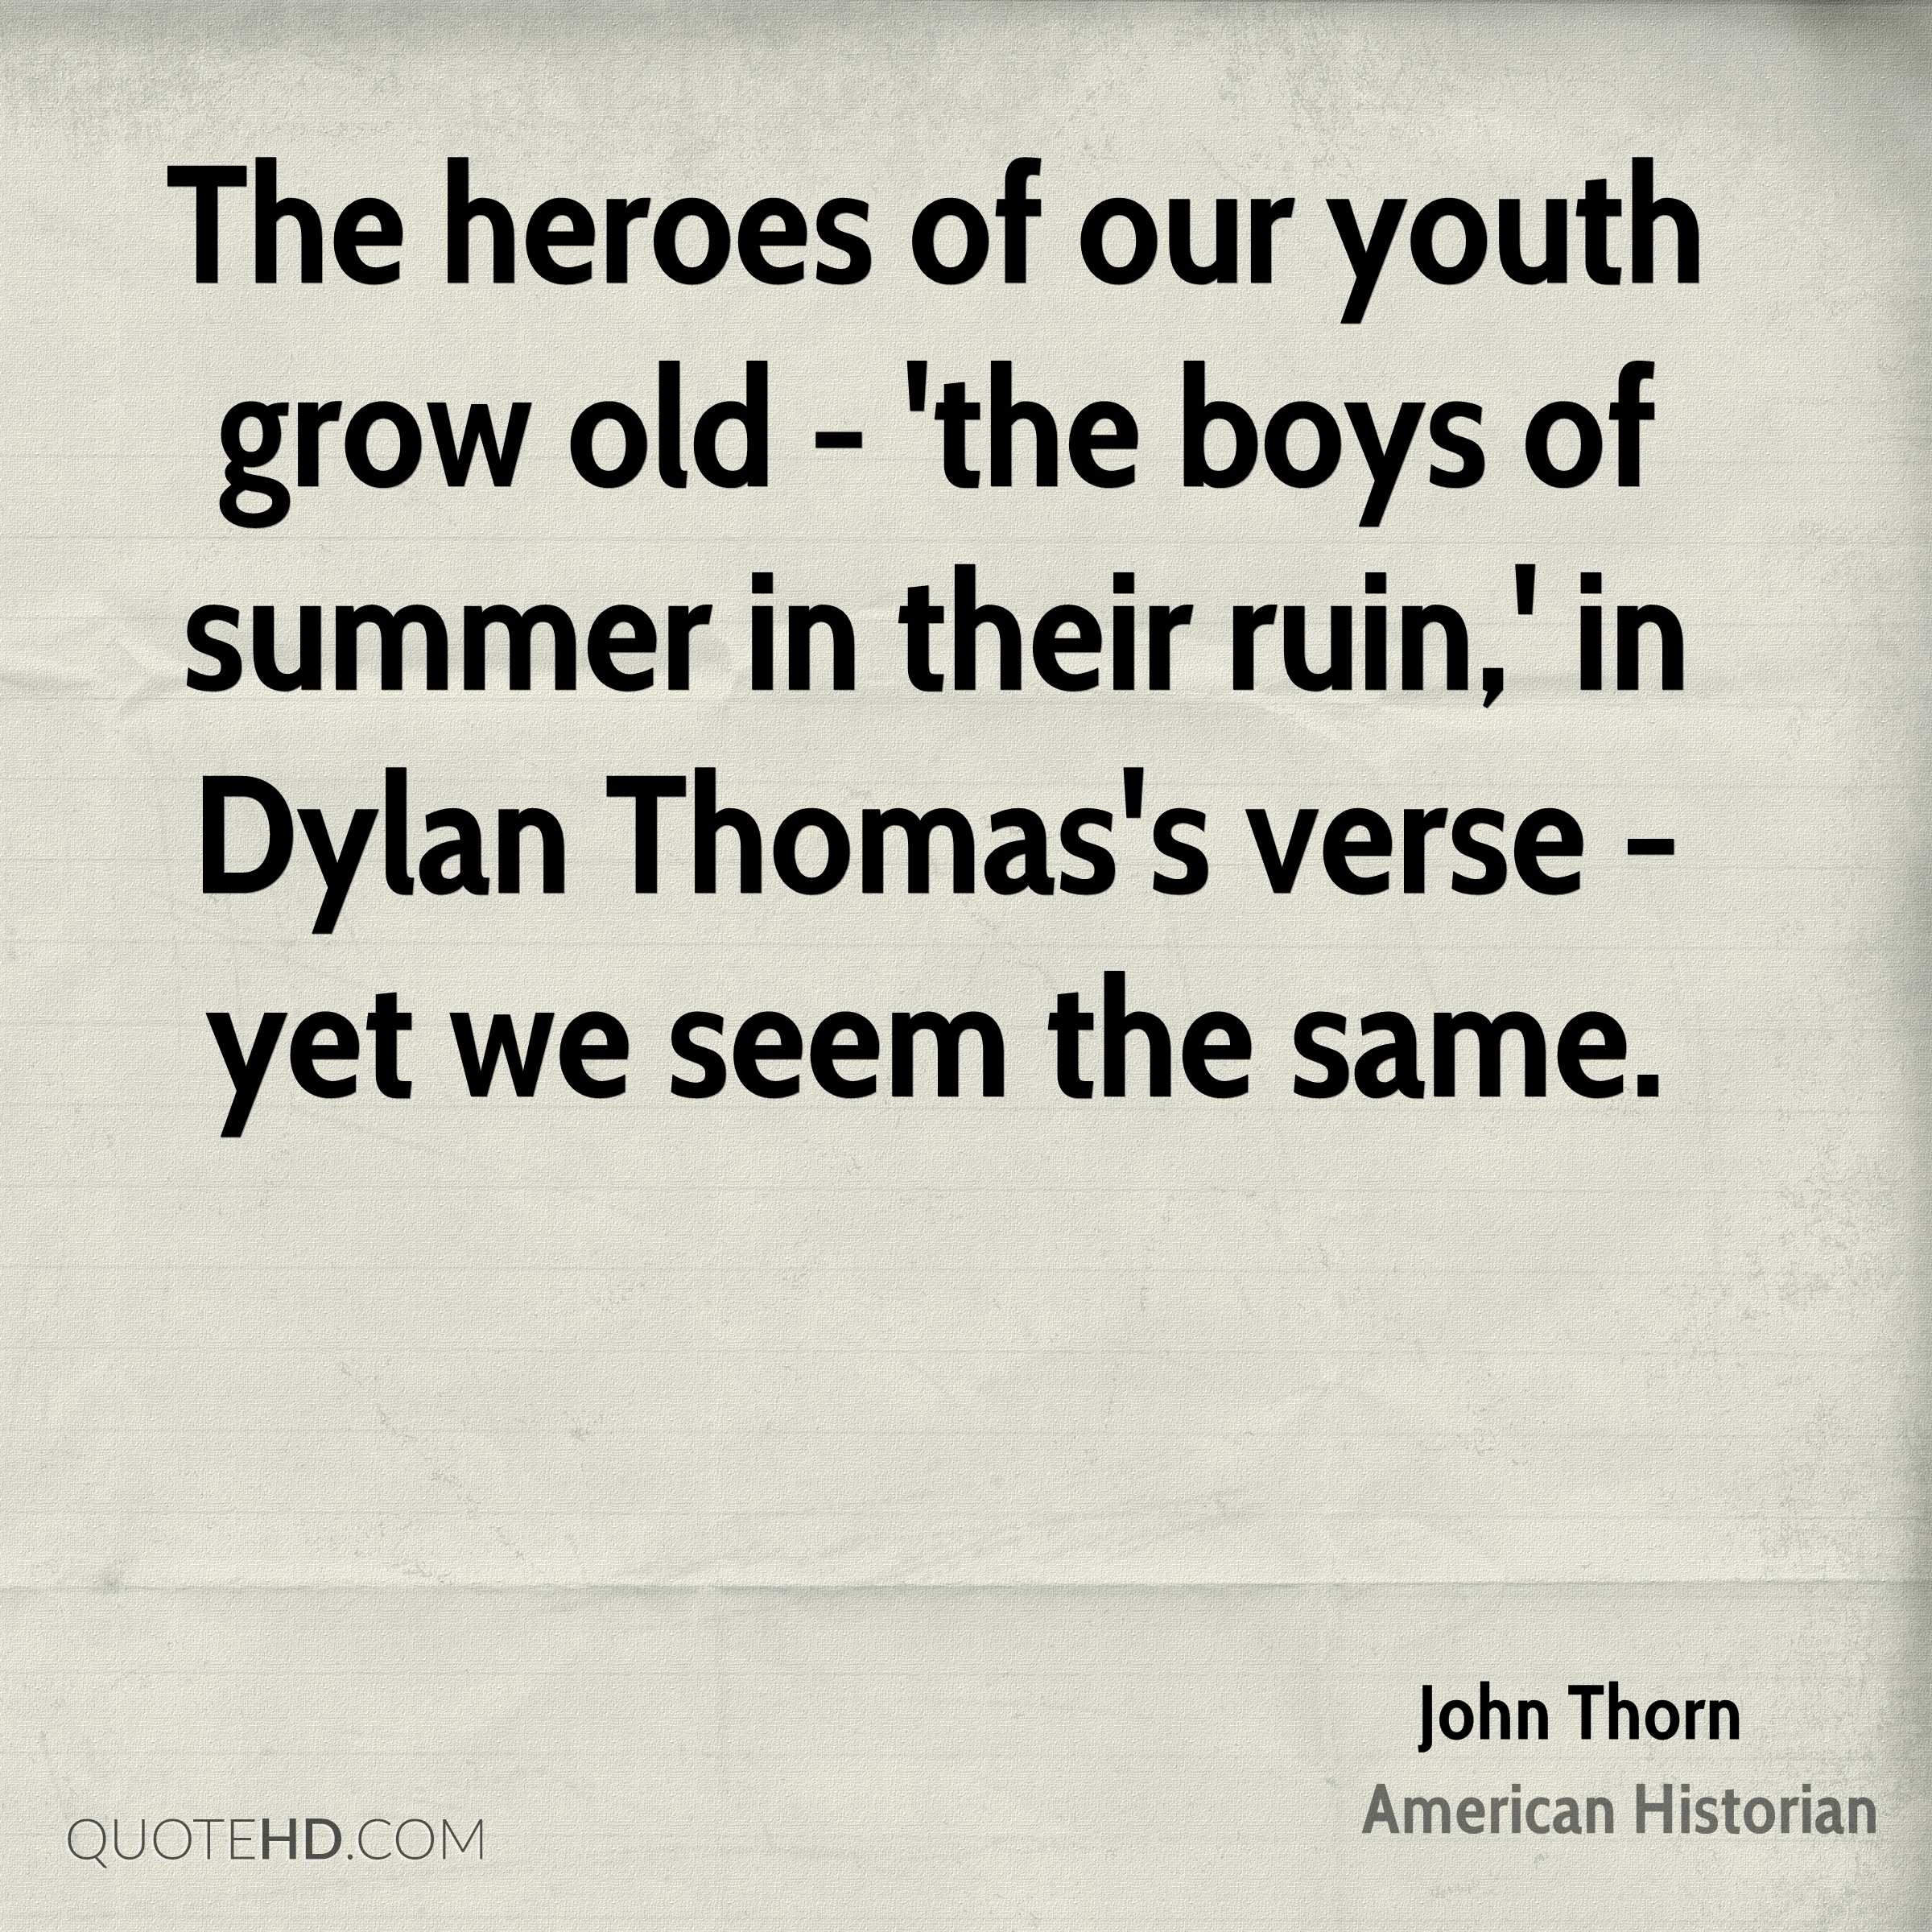 The heroes of our youth grow old - 'the boys of summer in their ruin,' in Dylan Thomas's verse - yet we seem the same.